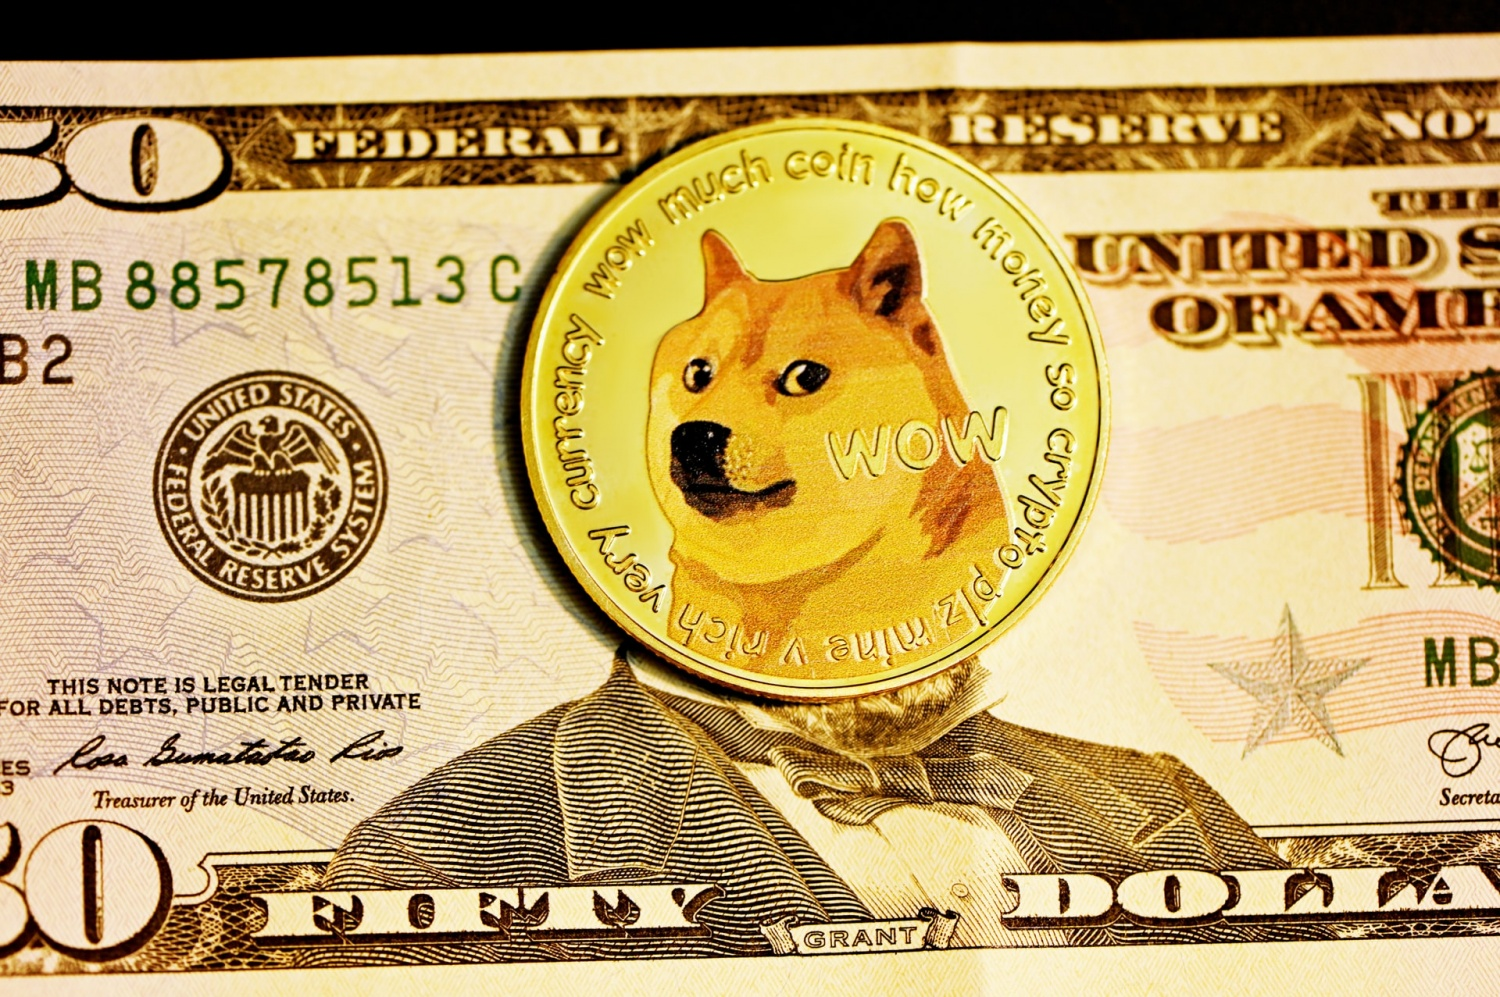 Crypto Watch: Elon Musk Reacts to Dogecoin Creator's Tweet with Face with Tongue Emoji   'Keep Dogecoin Absurd'